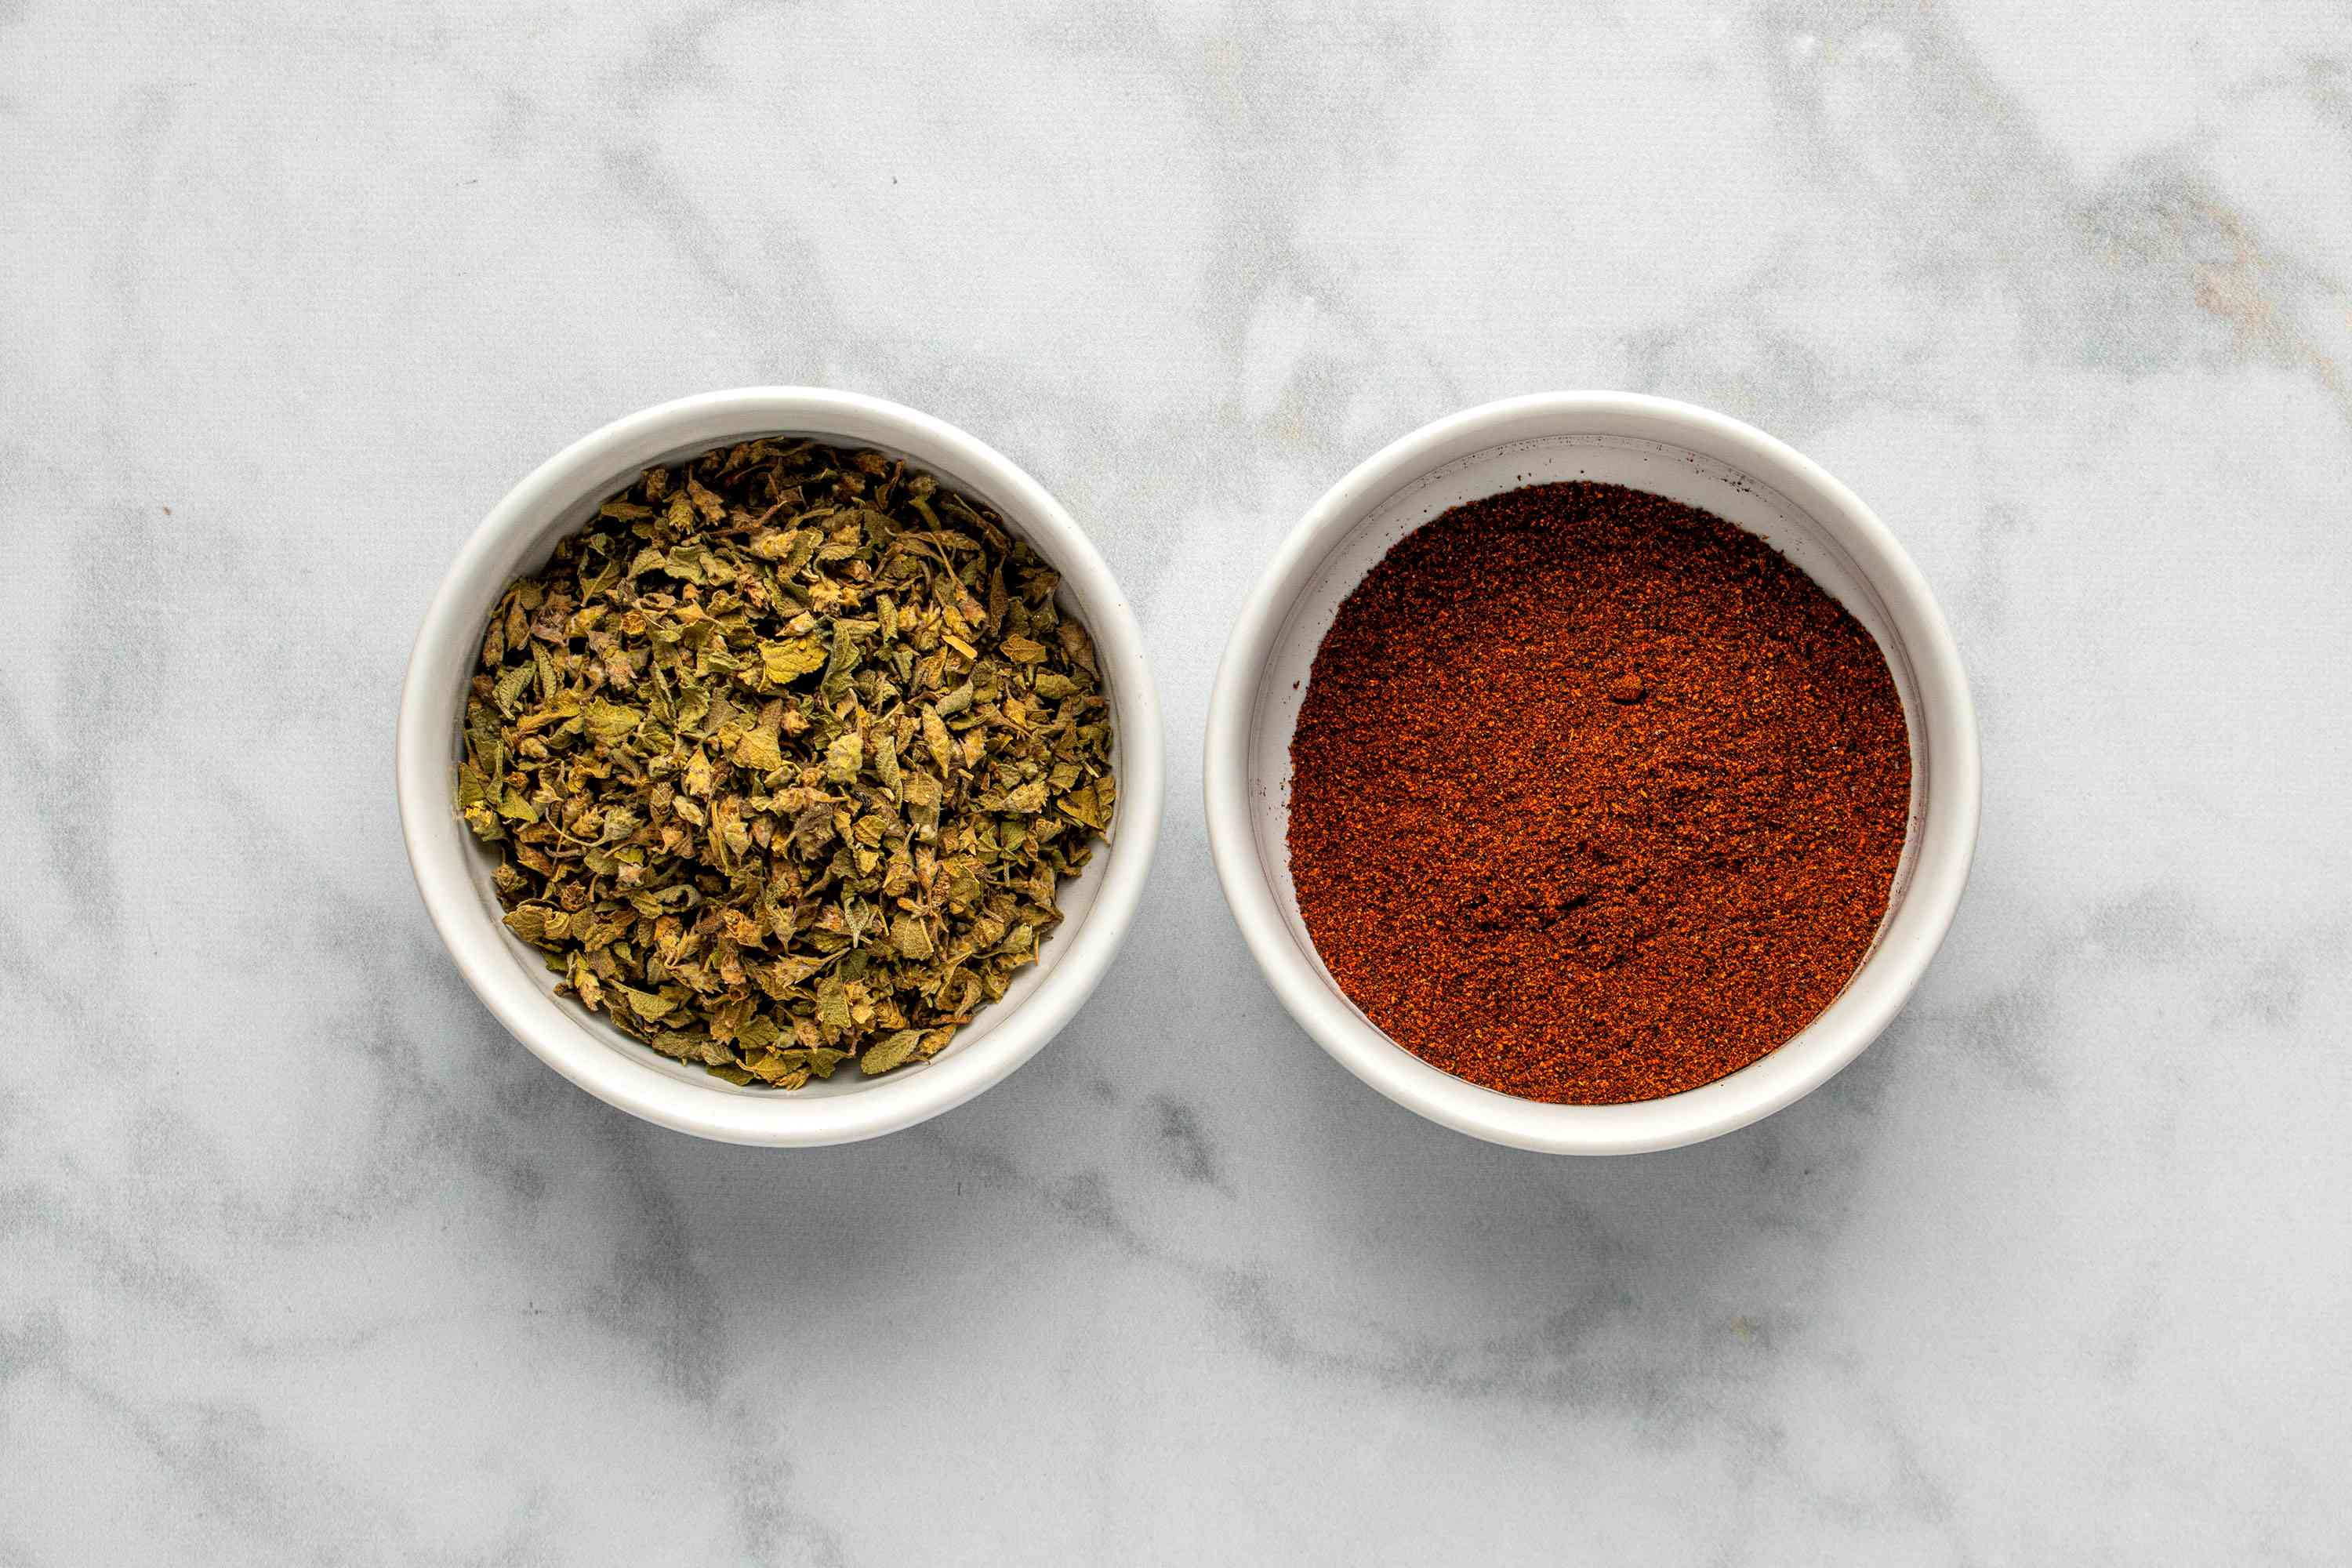 dried oregano and ground chile pepper in bowls